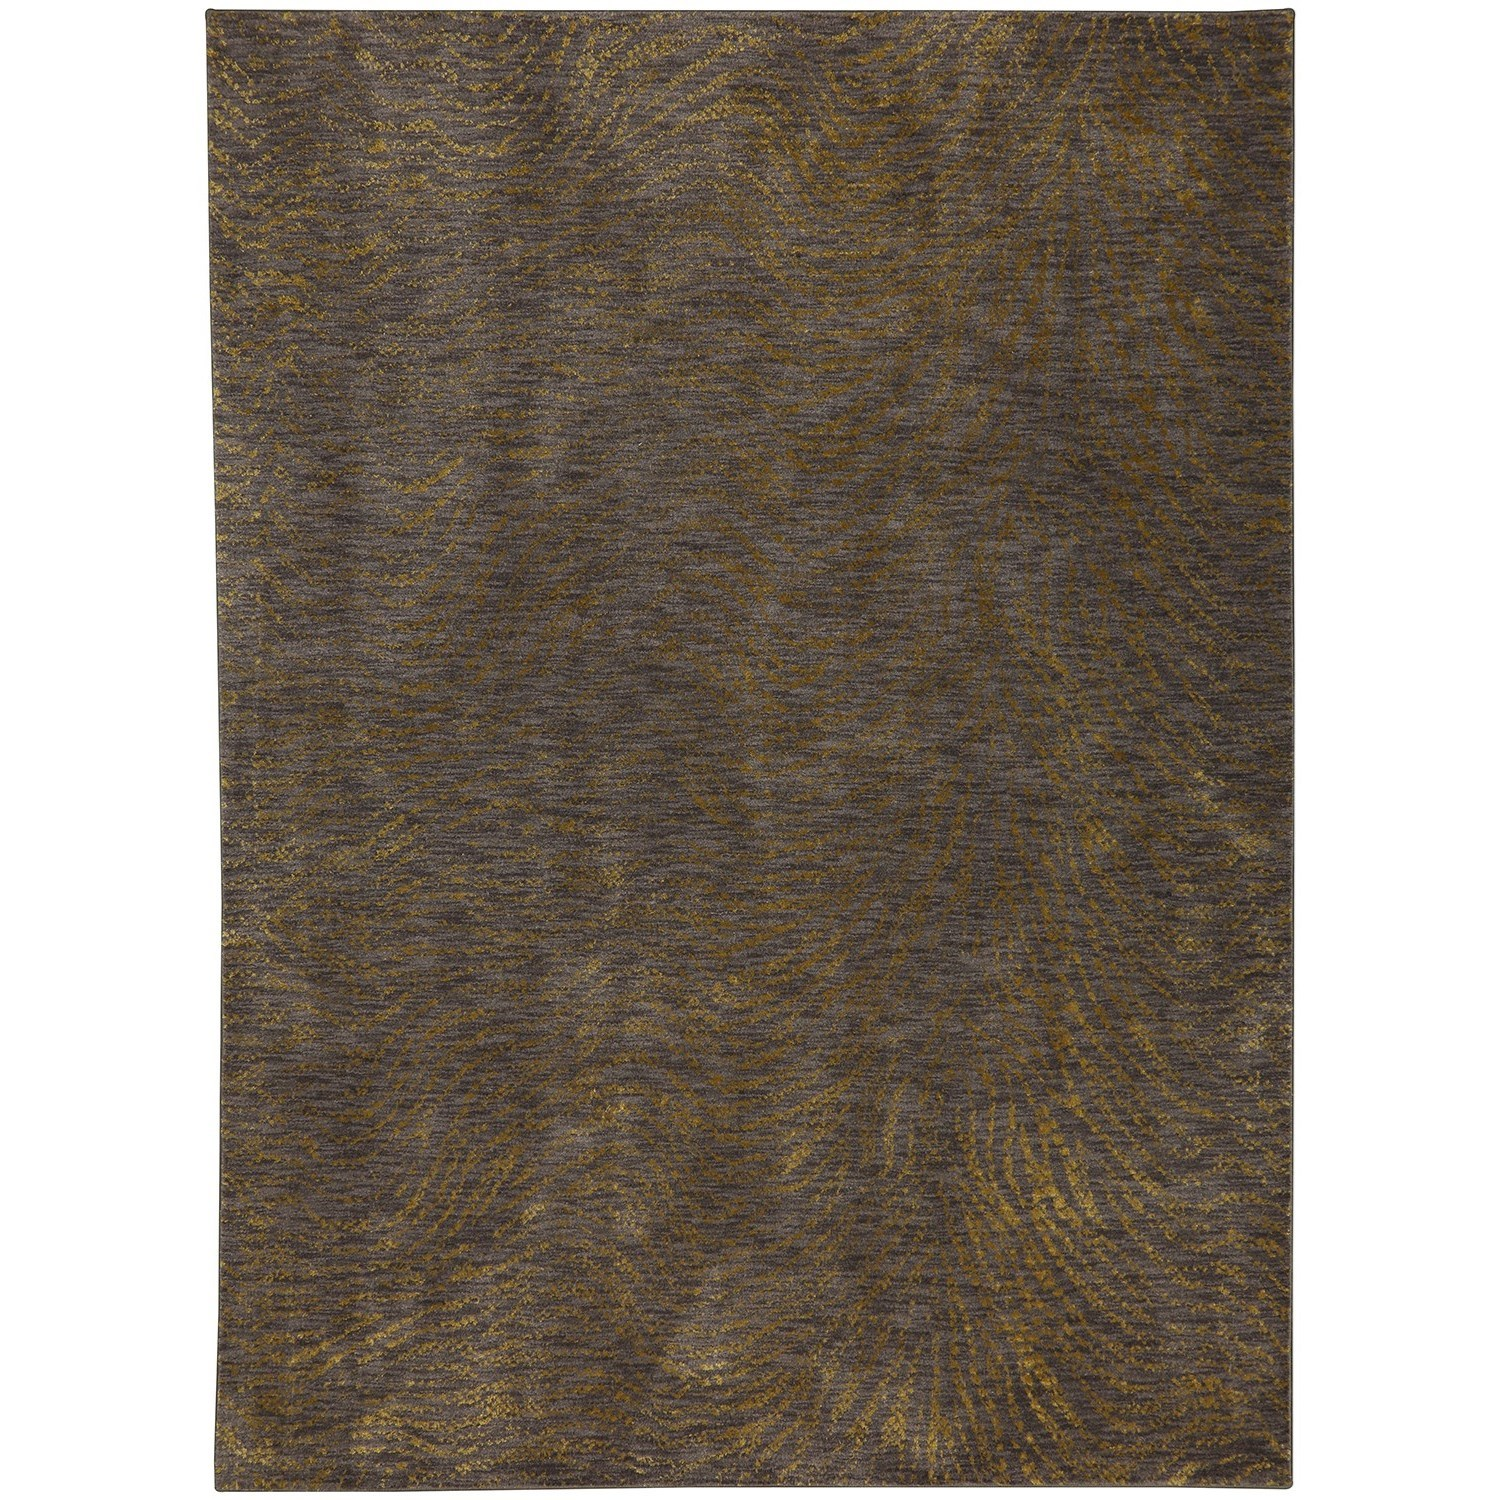 """Enigma 5' 3""""x7' 10"""" Rectangle Animal Print Area Rug by Karastan Rugs at Darvin Furniture"""